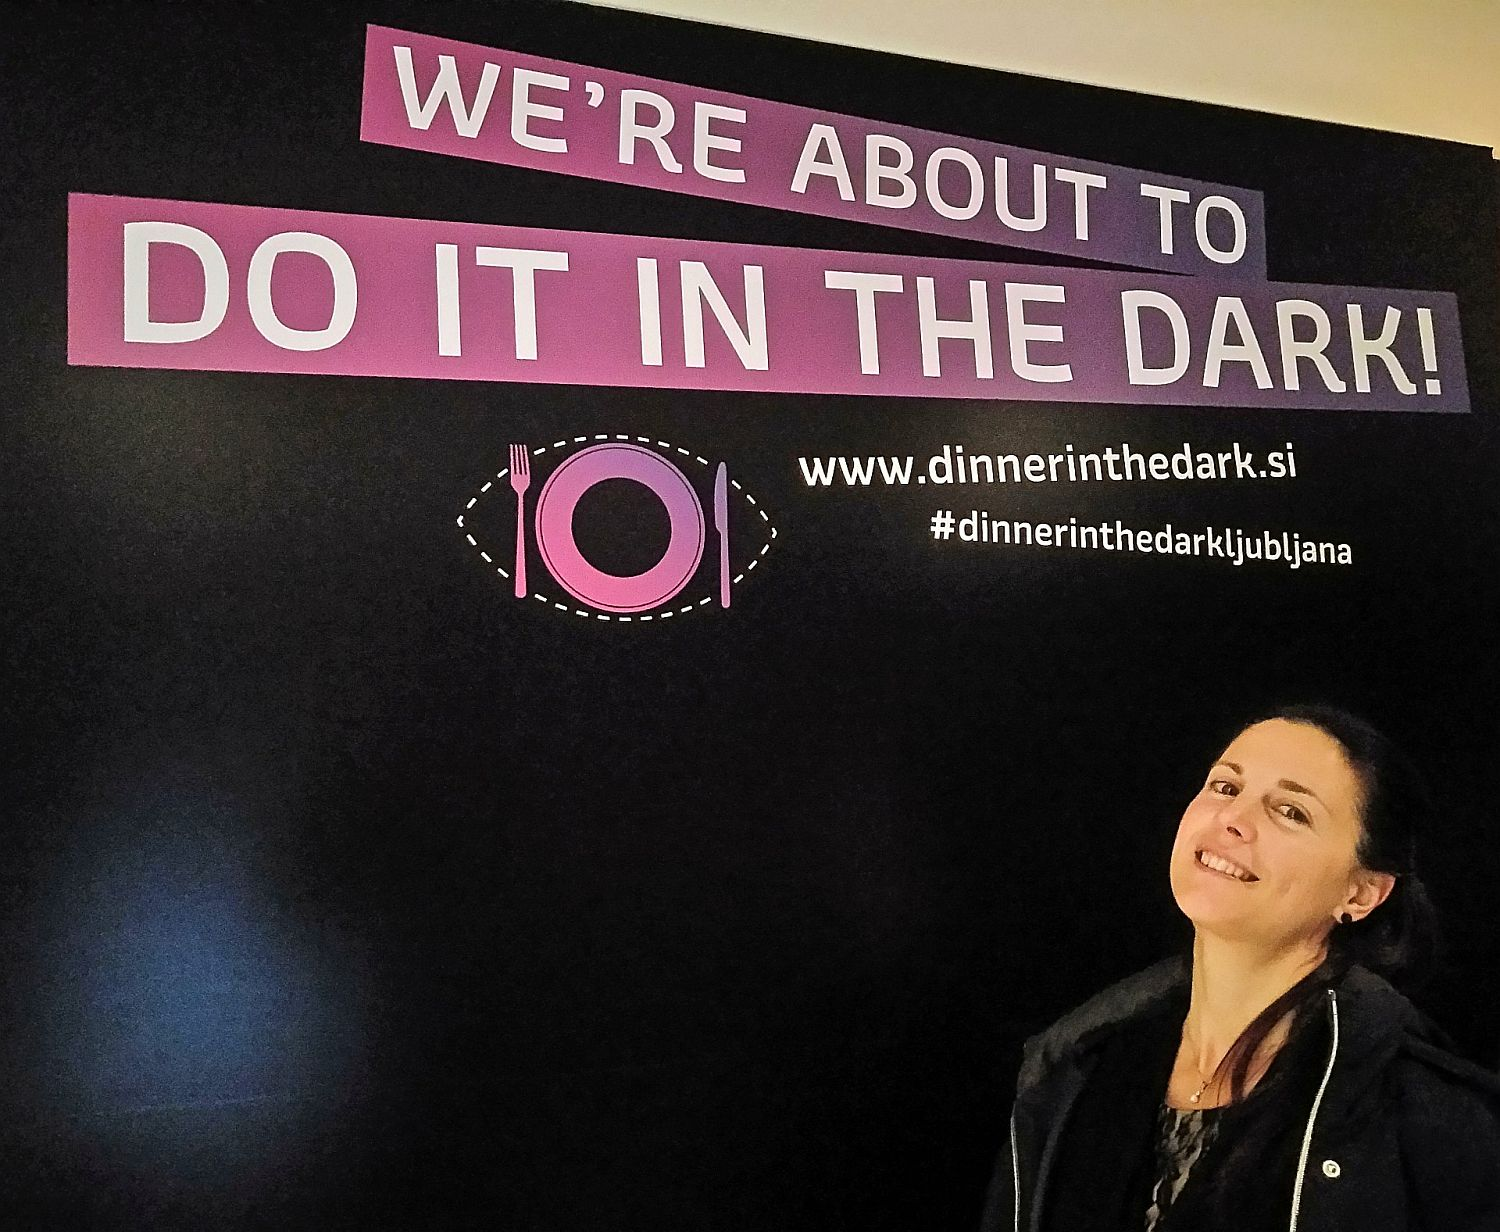 Denise Rejec, Wine Dine Slovenia blogger, poses in front of Dinner in the Dark photo background